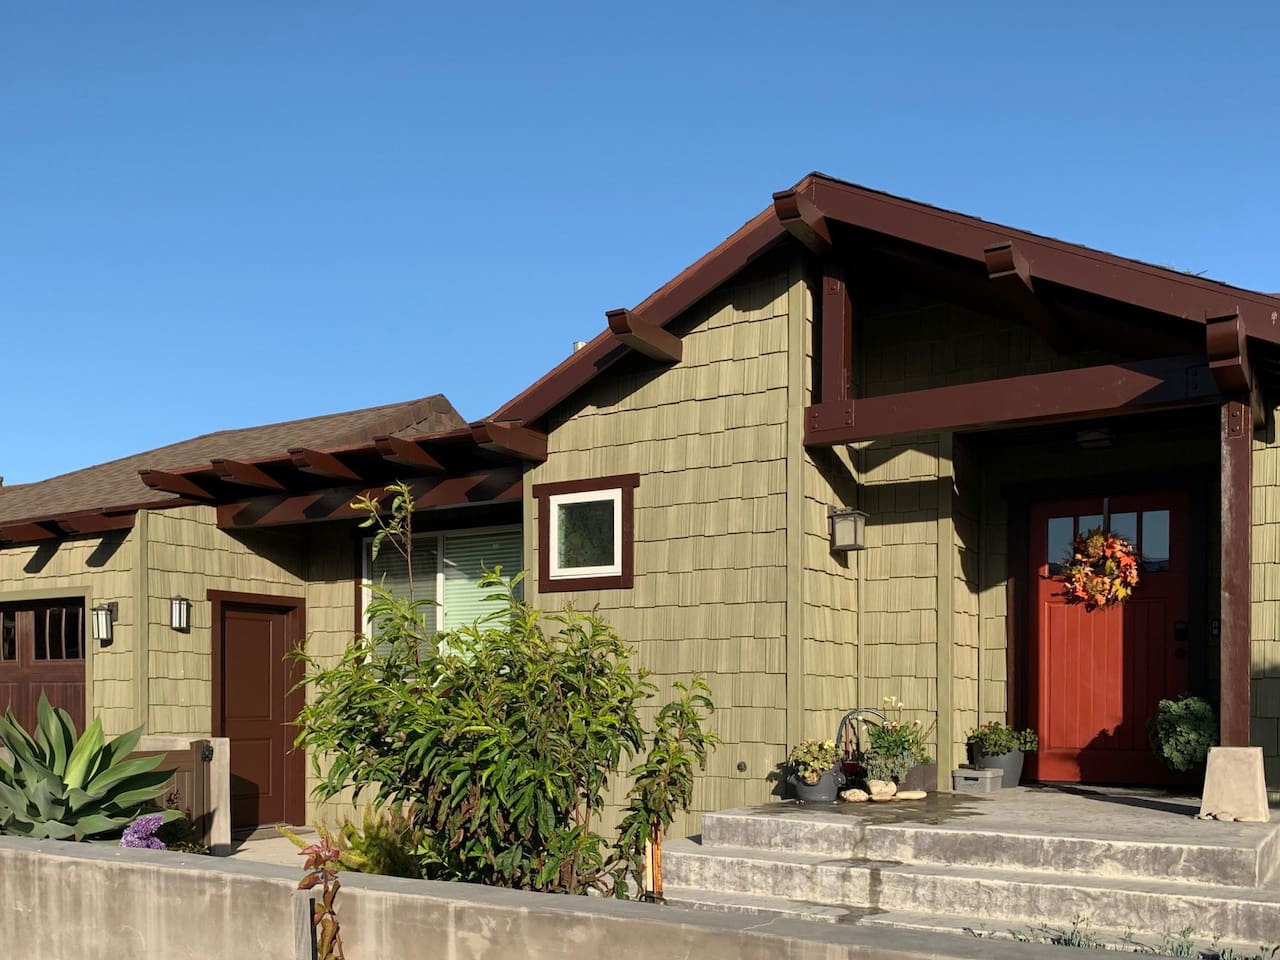 Welcome to Ventura! This craftsman-style home is professionally managed by TurnKey Vacation Rentals.